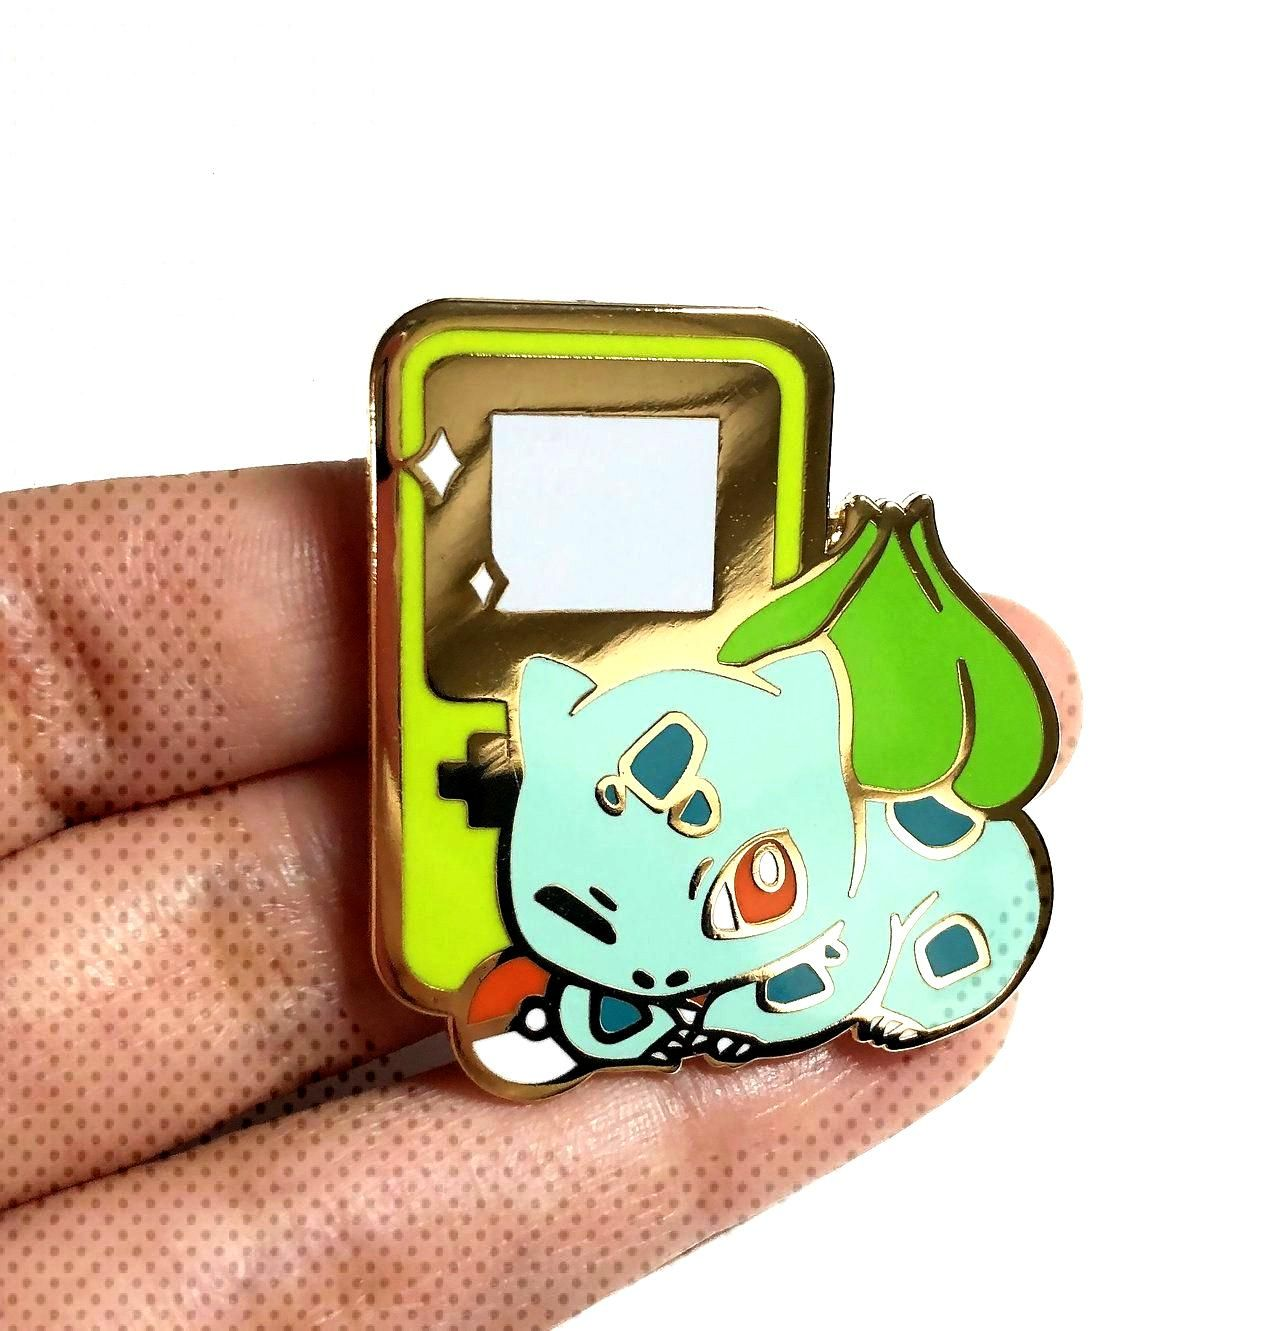 Starter Pokemon Gameboy Pins made by Alienboot -